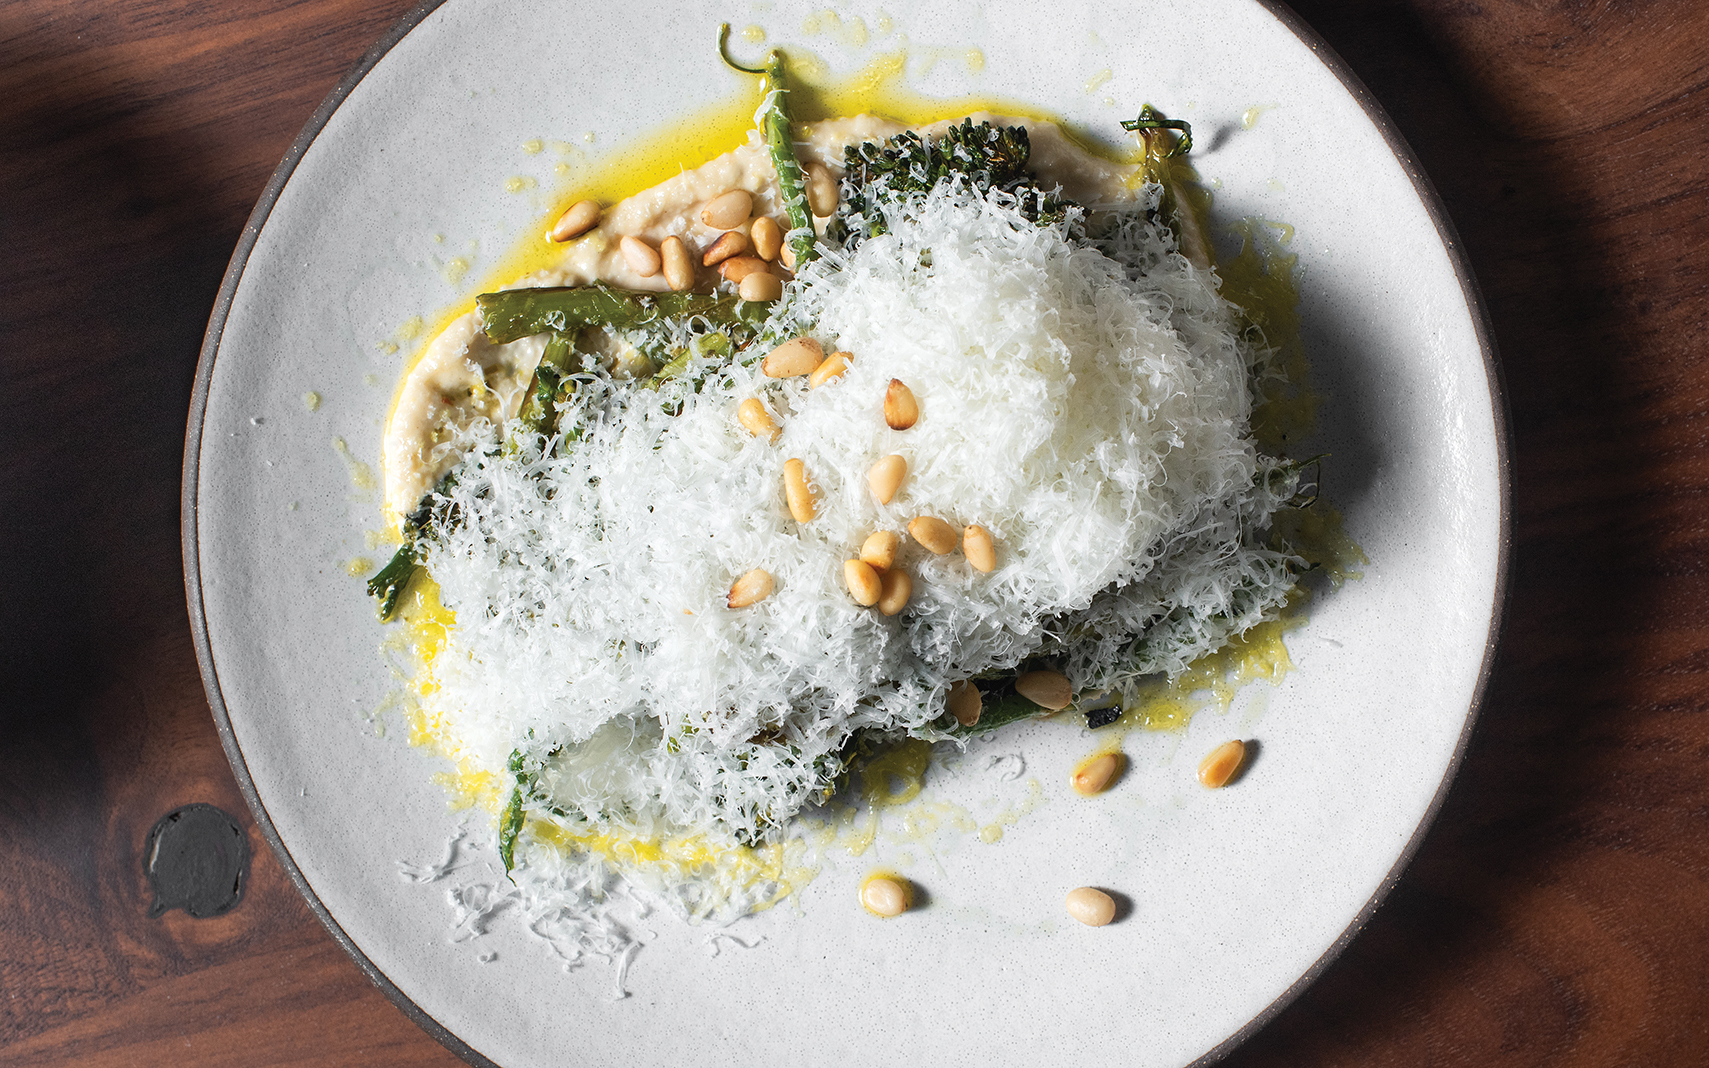 Roasted broccolini with pine nut tahini, toasted pine nuts, green chermoula, and pecorino